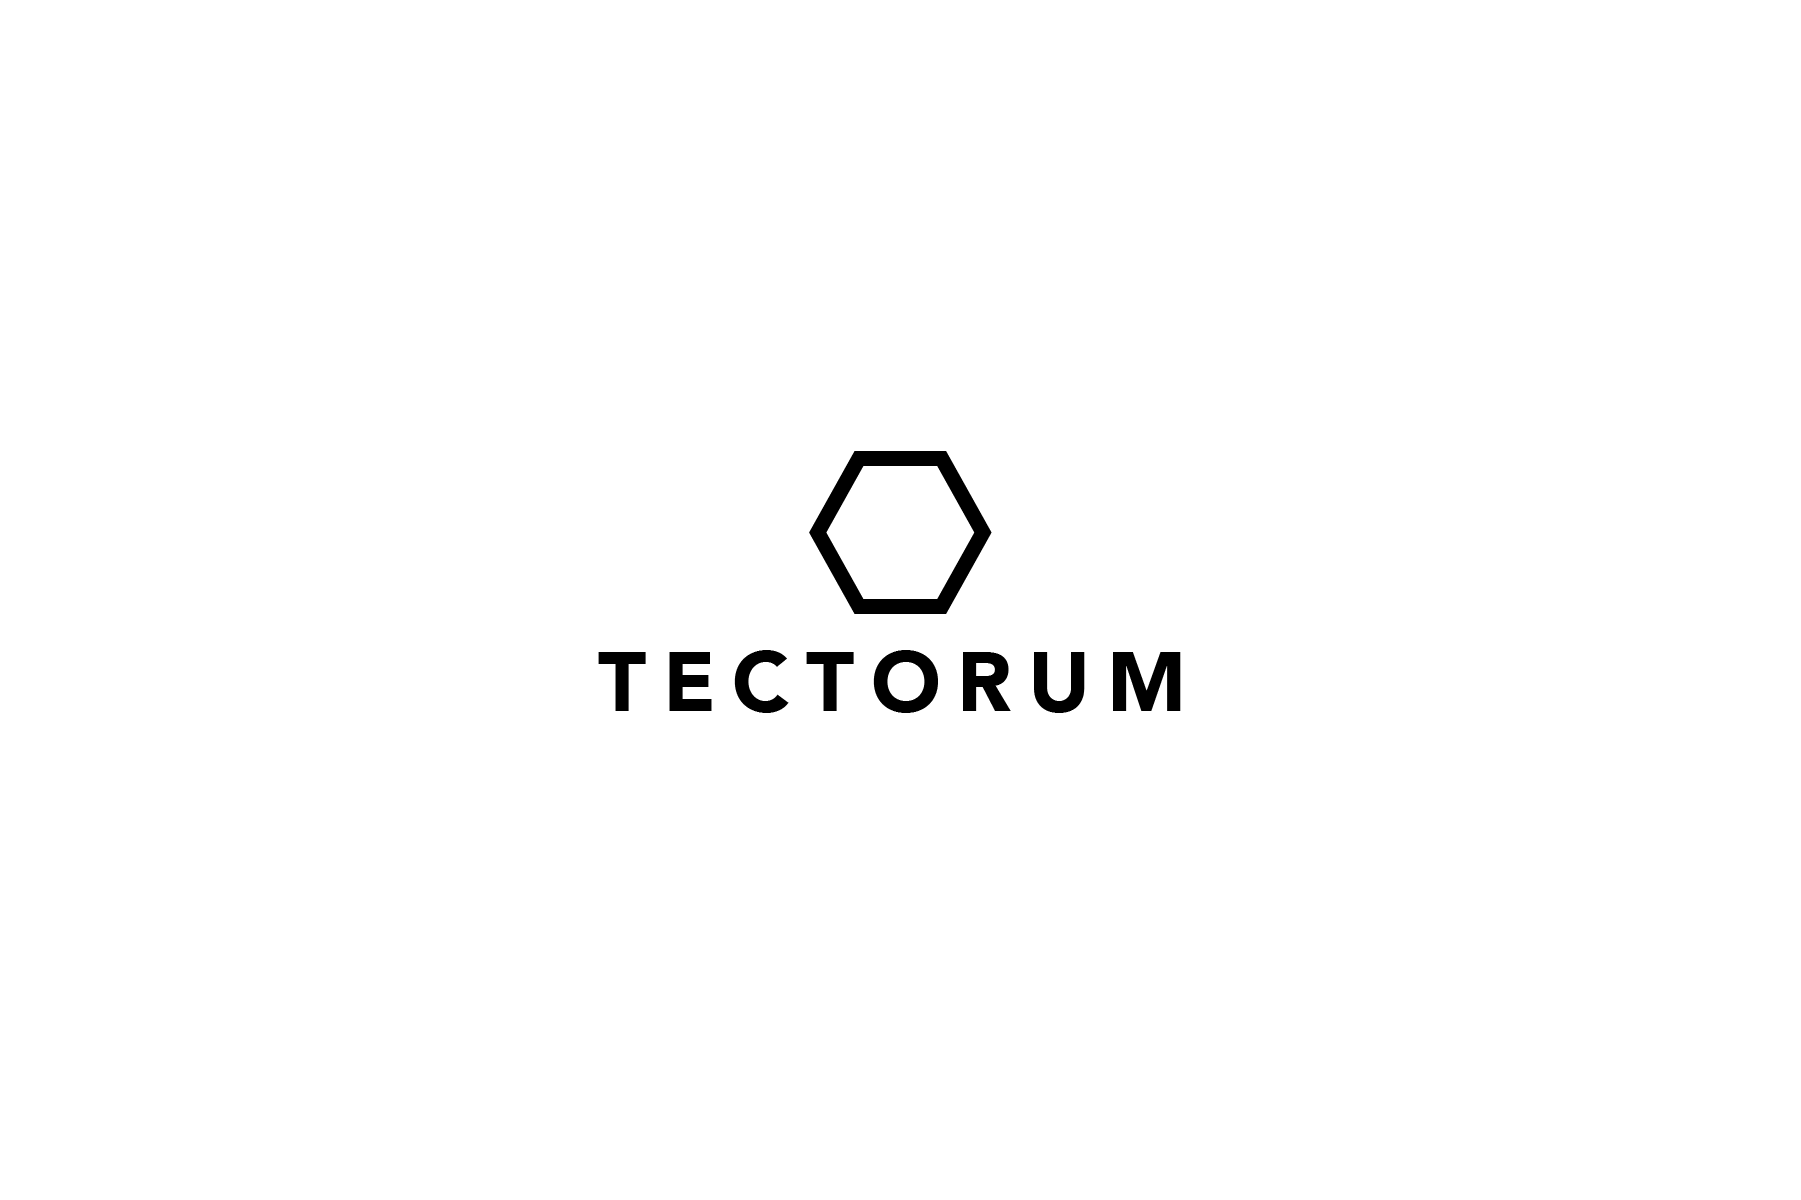 logo_iterations-05.png